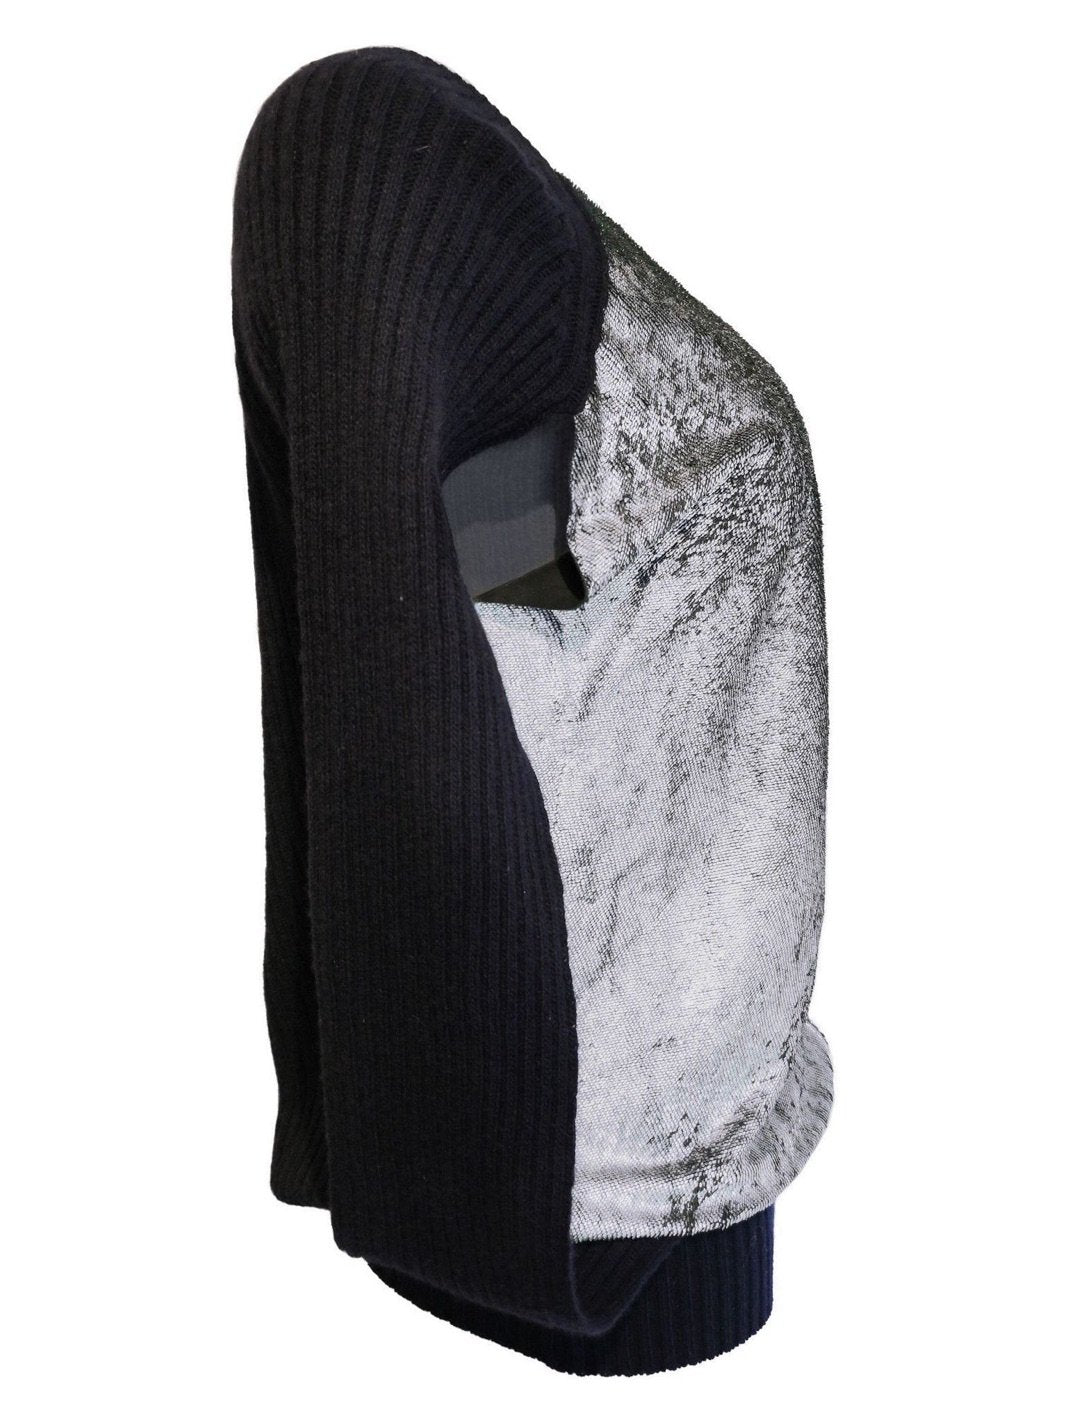 Wool Two-Tone Vest - The Bobby Boga